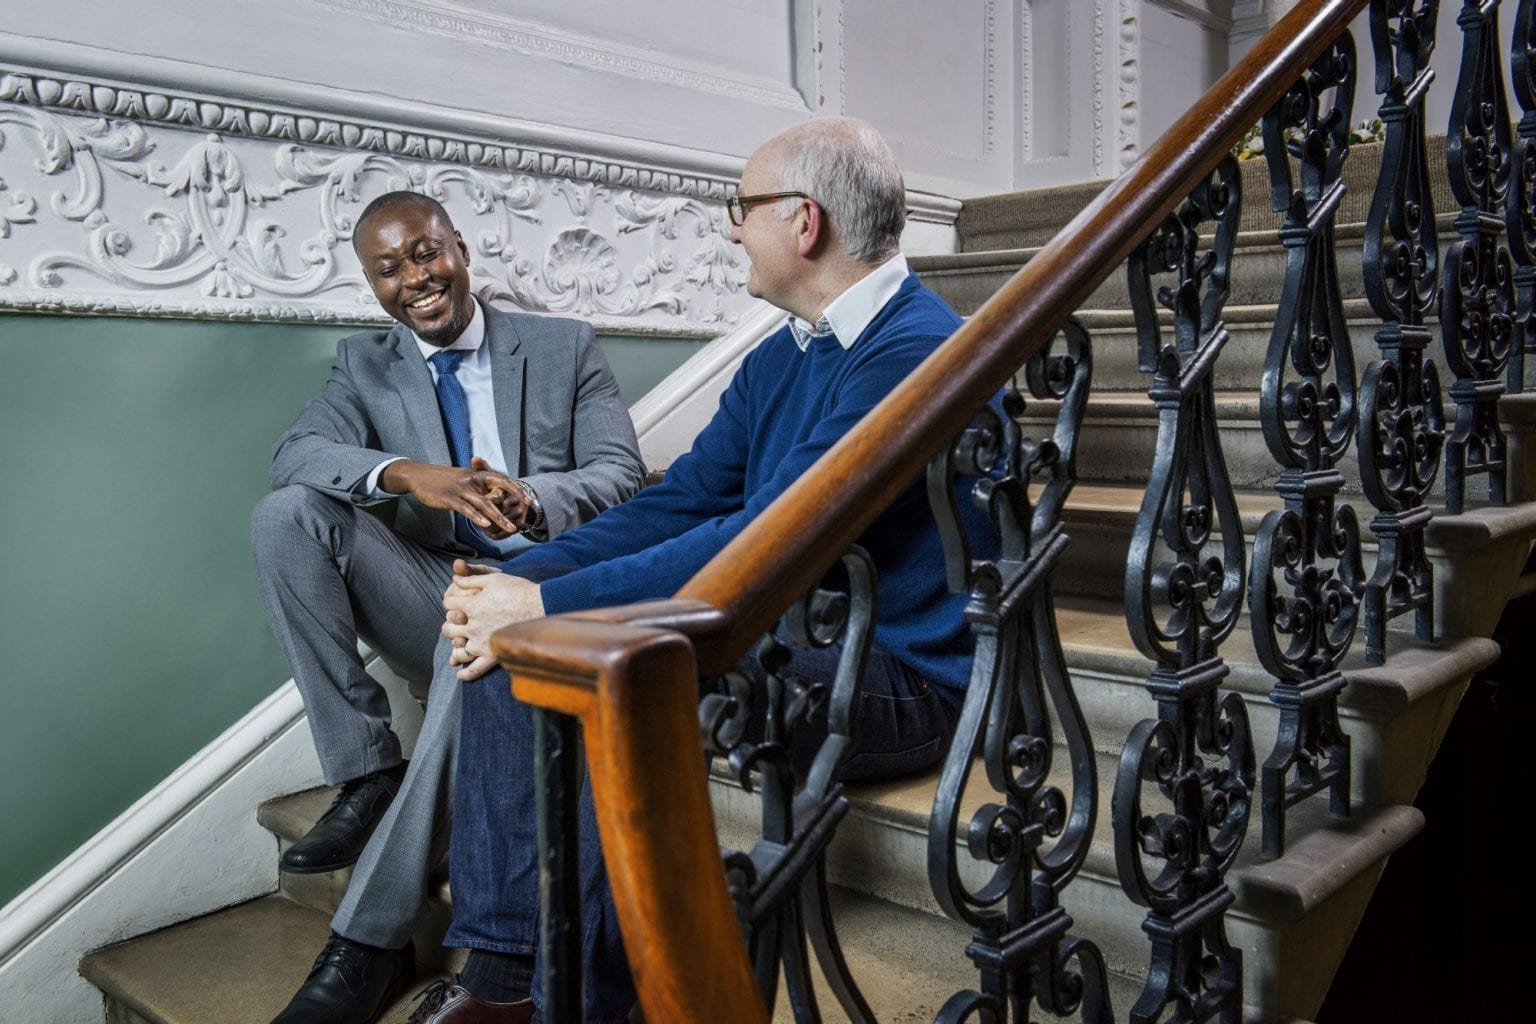 Rob and Victor; the value of mentoring